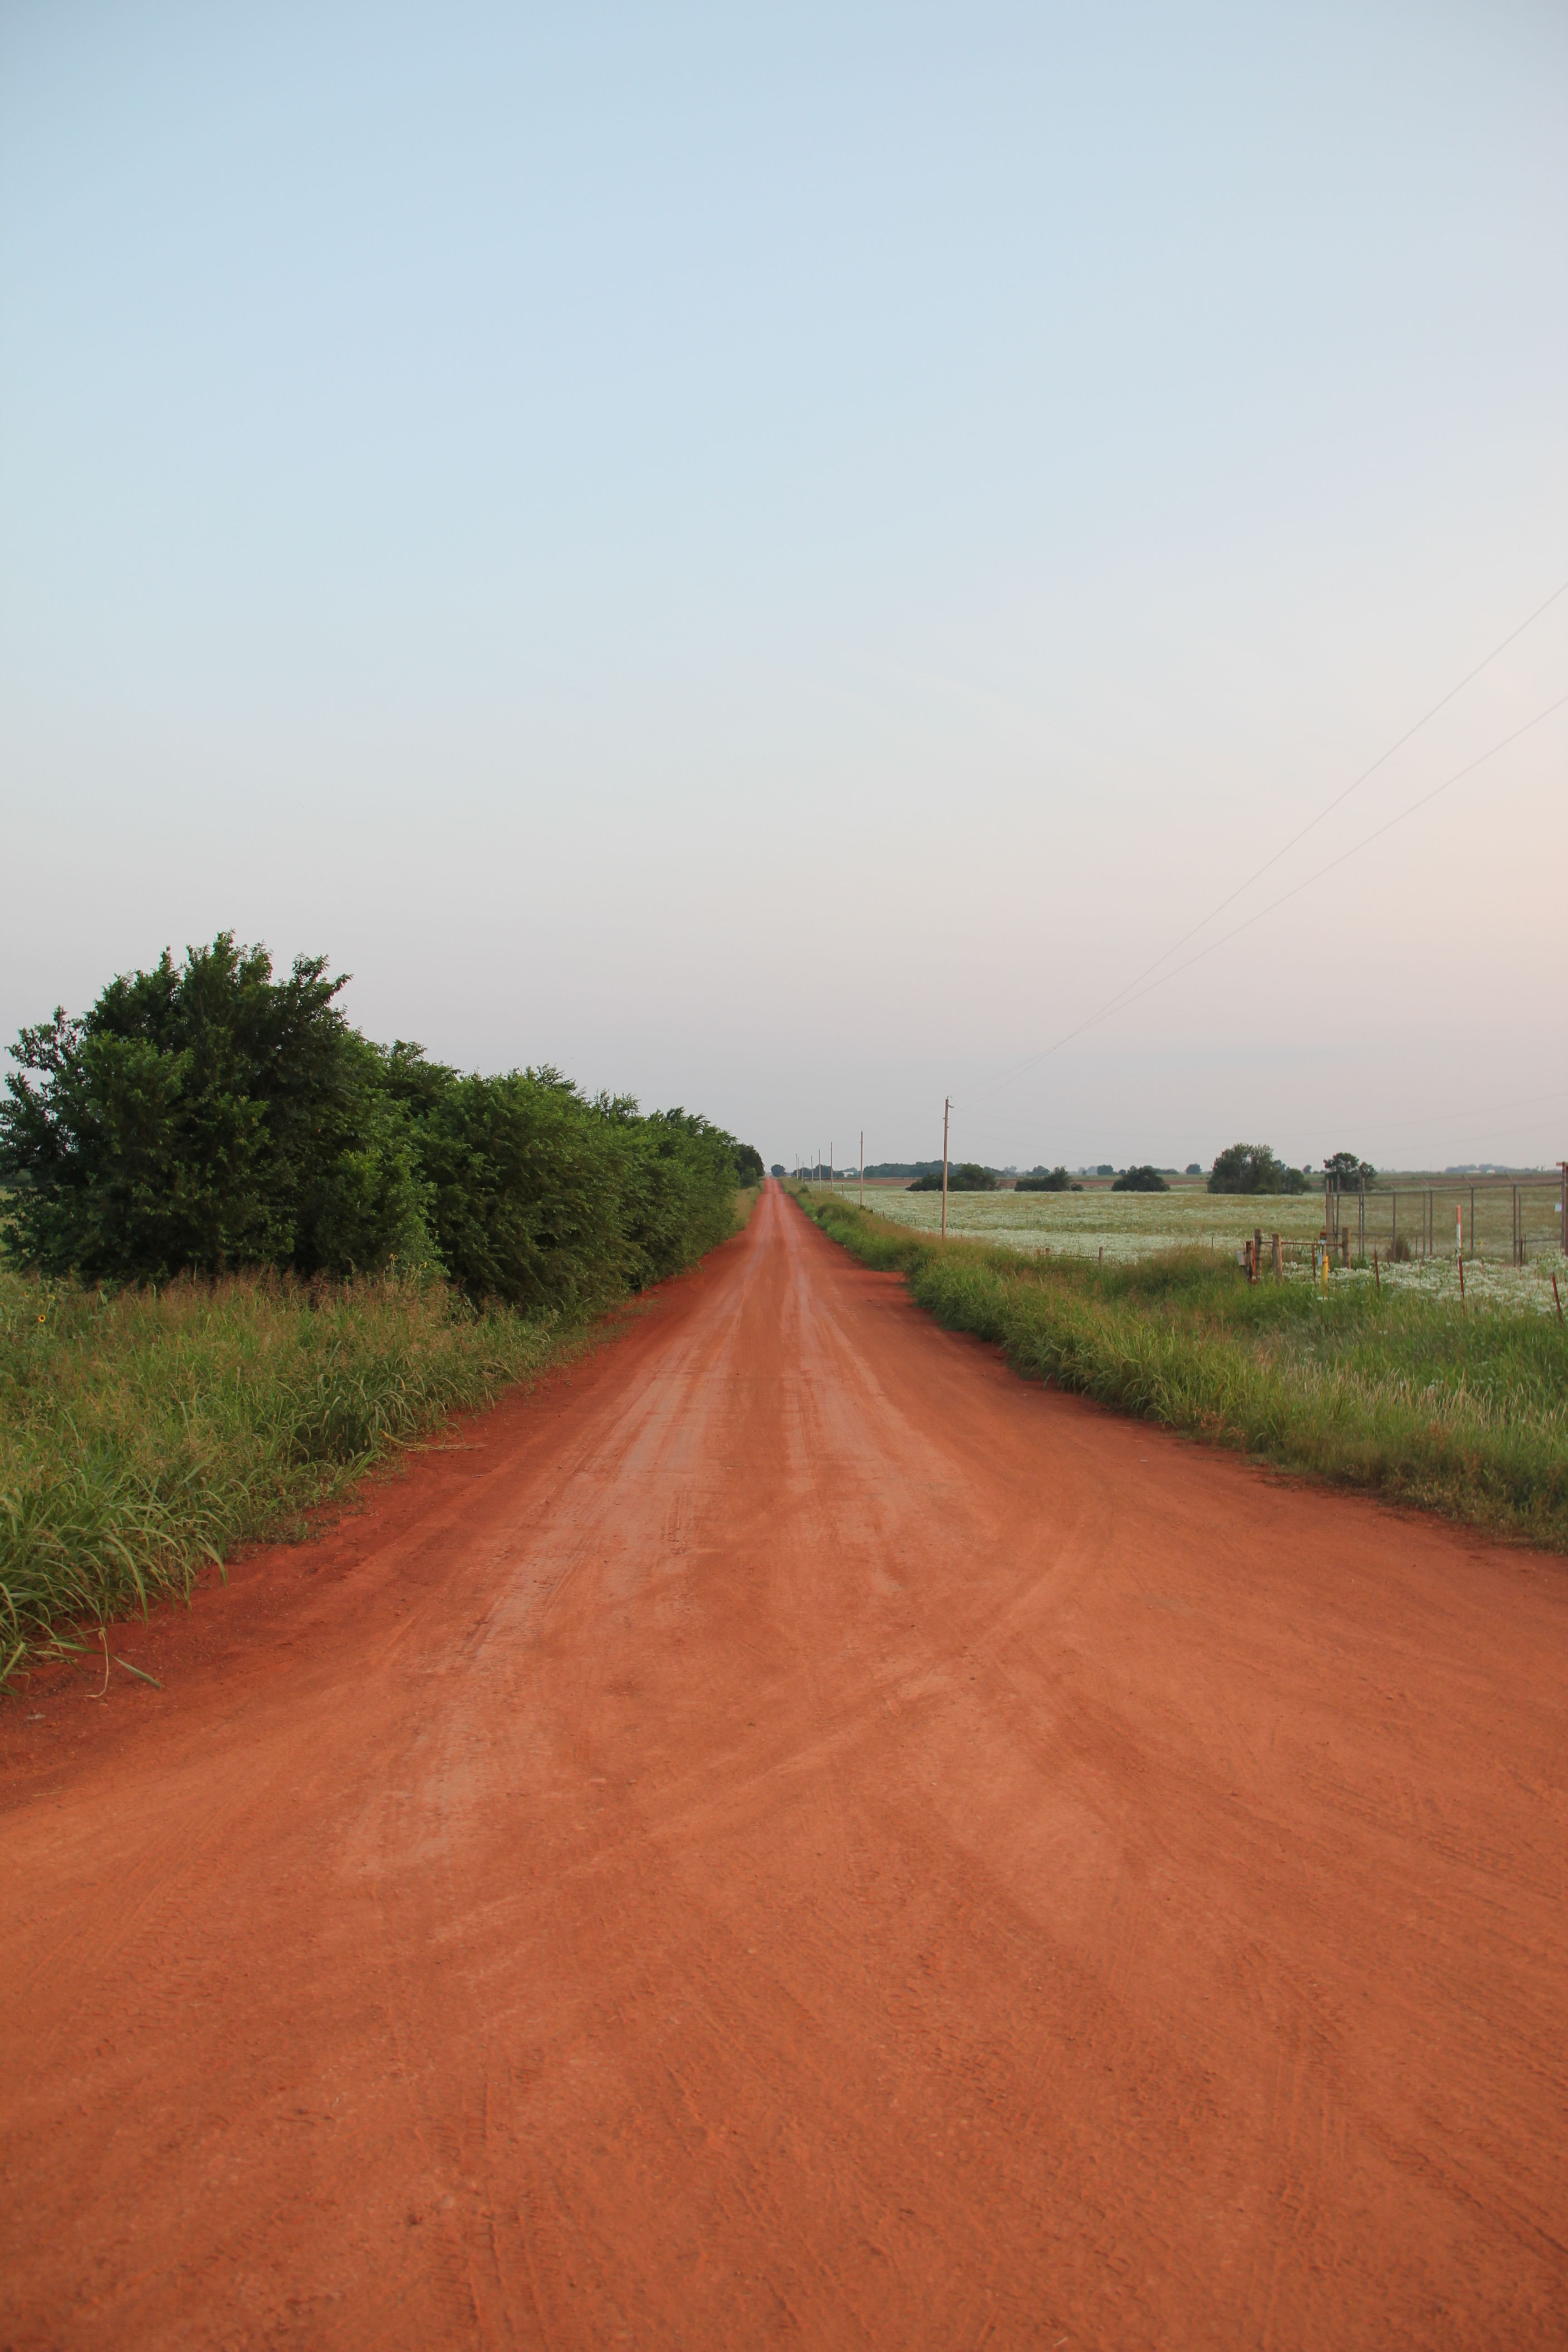 Oklahoma Red Dirt Road Red Dirt Road Dirt Road